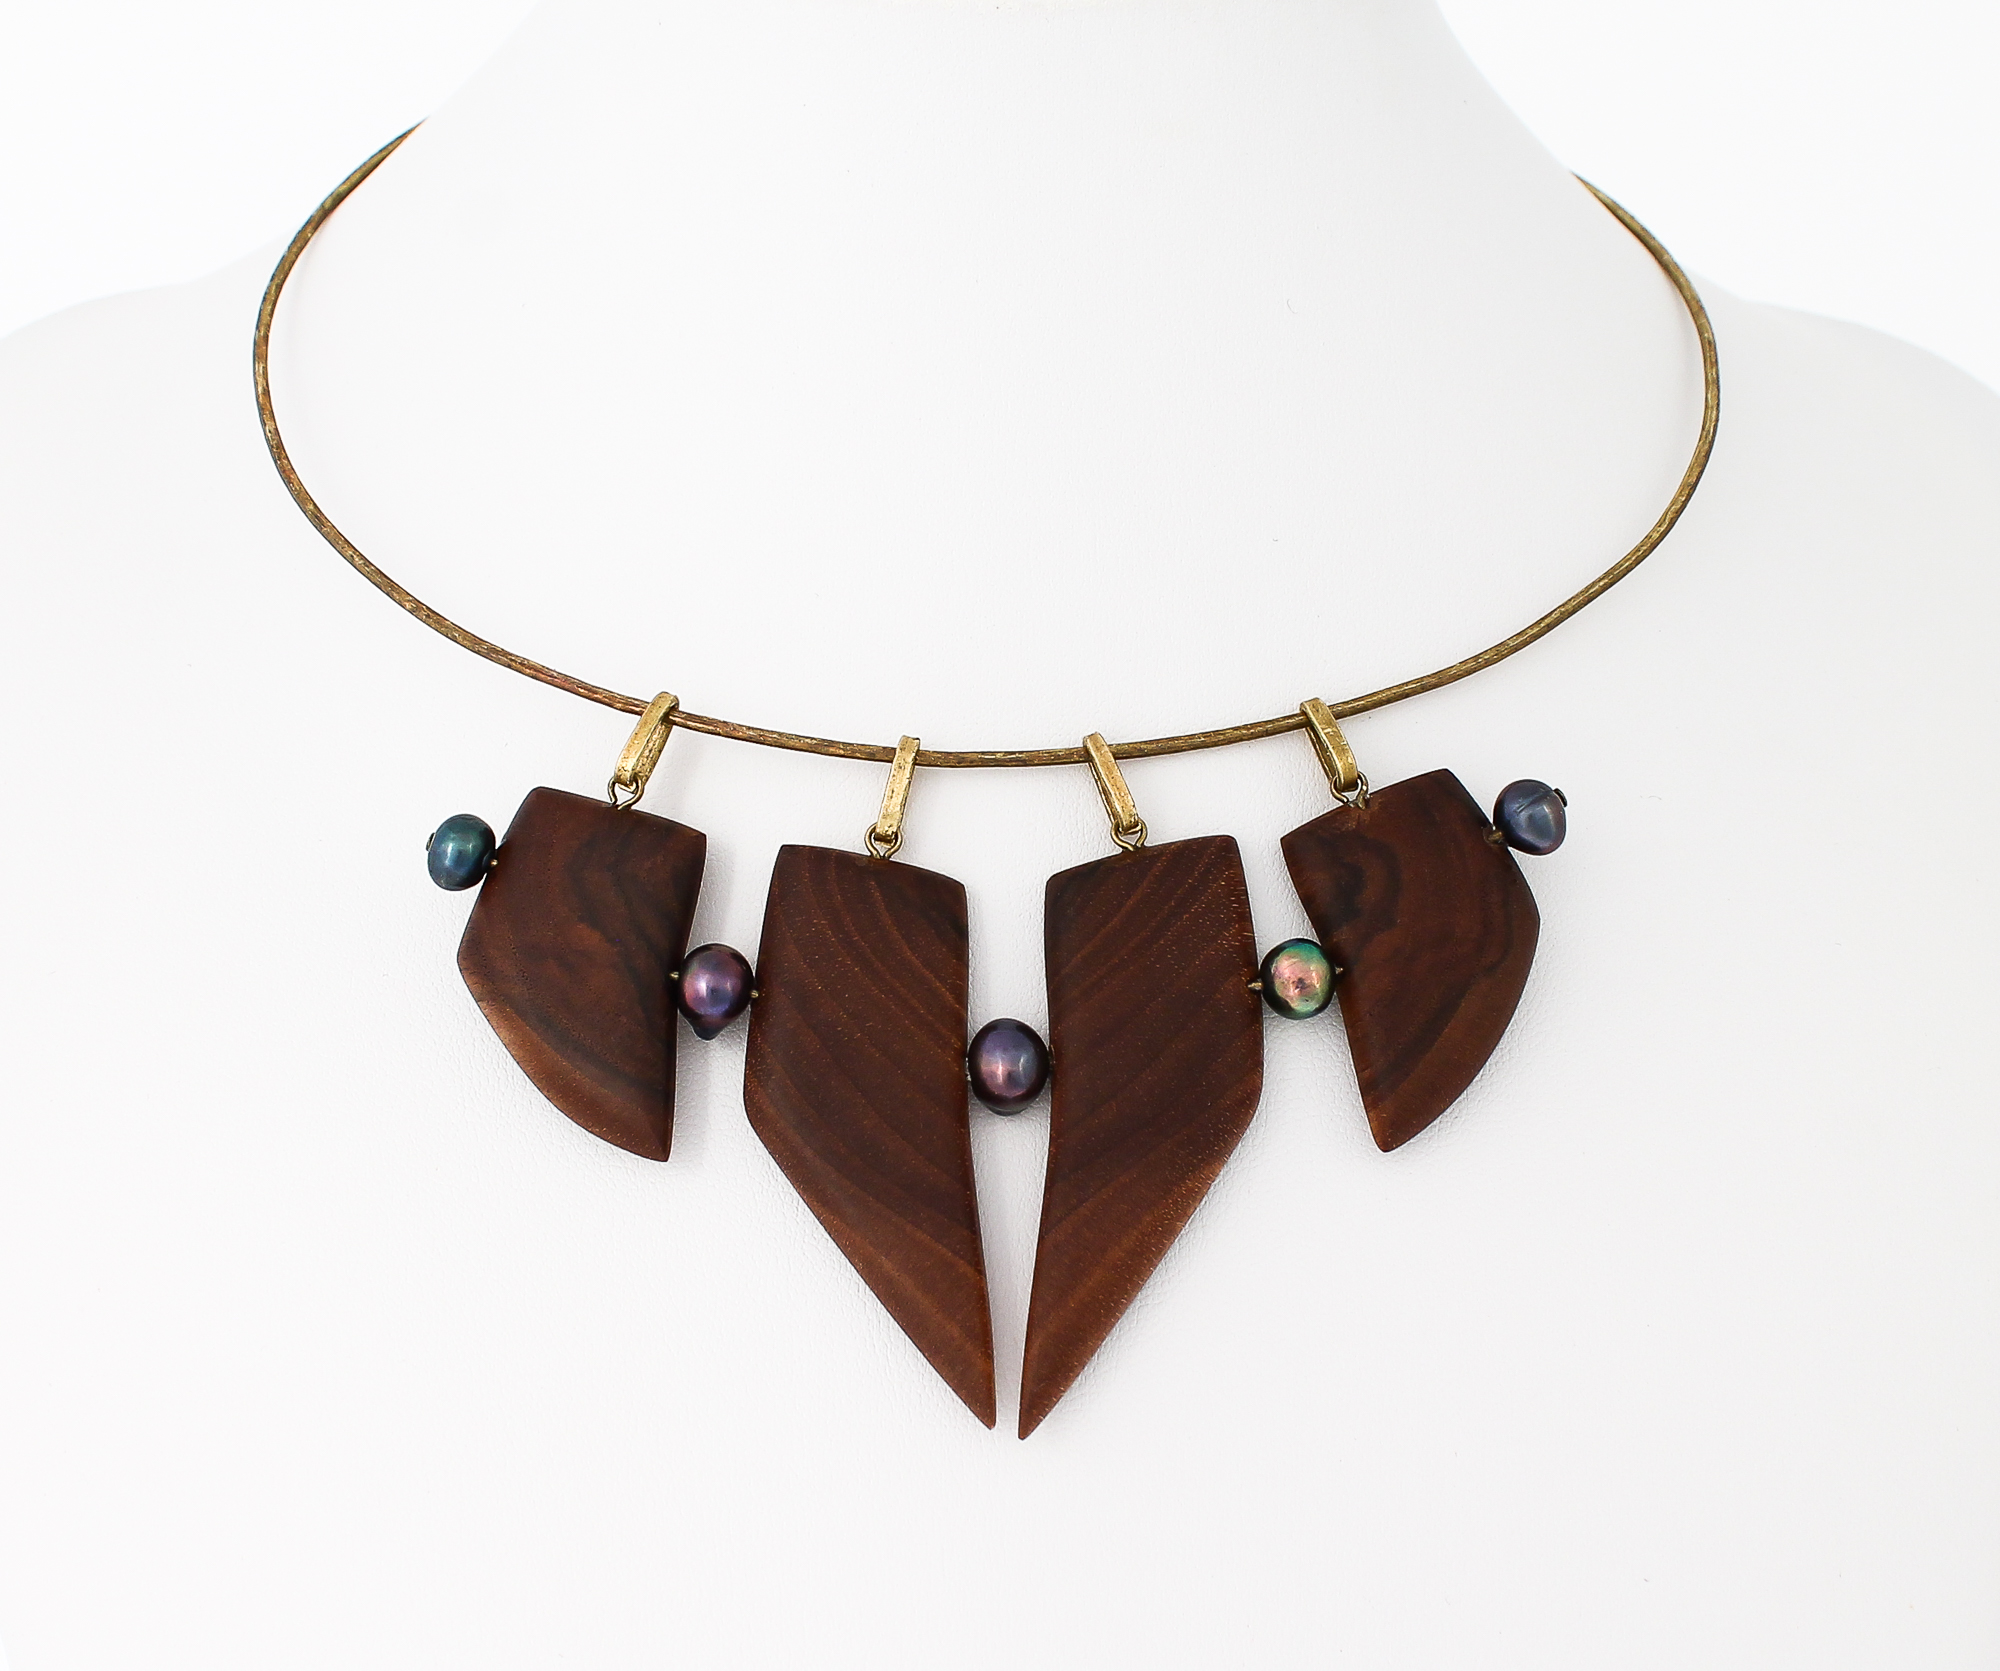 walnut, black pearls, brass necklace